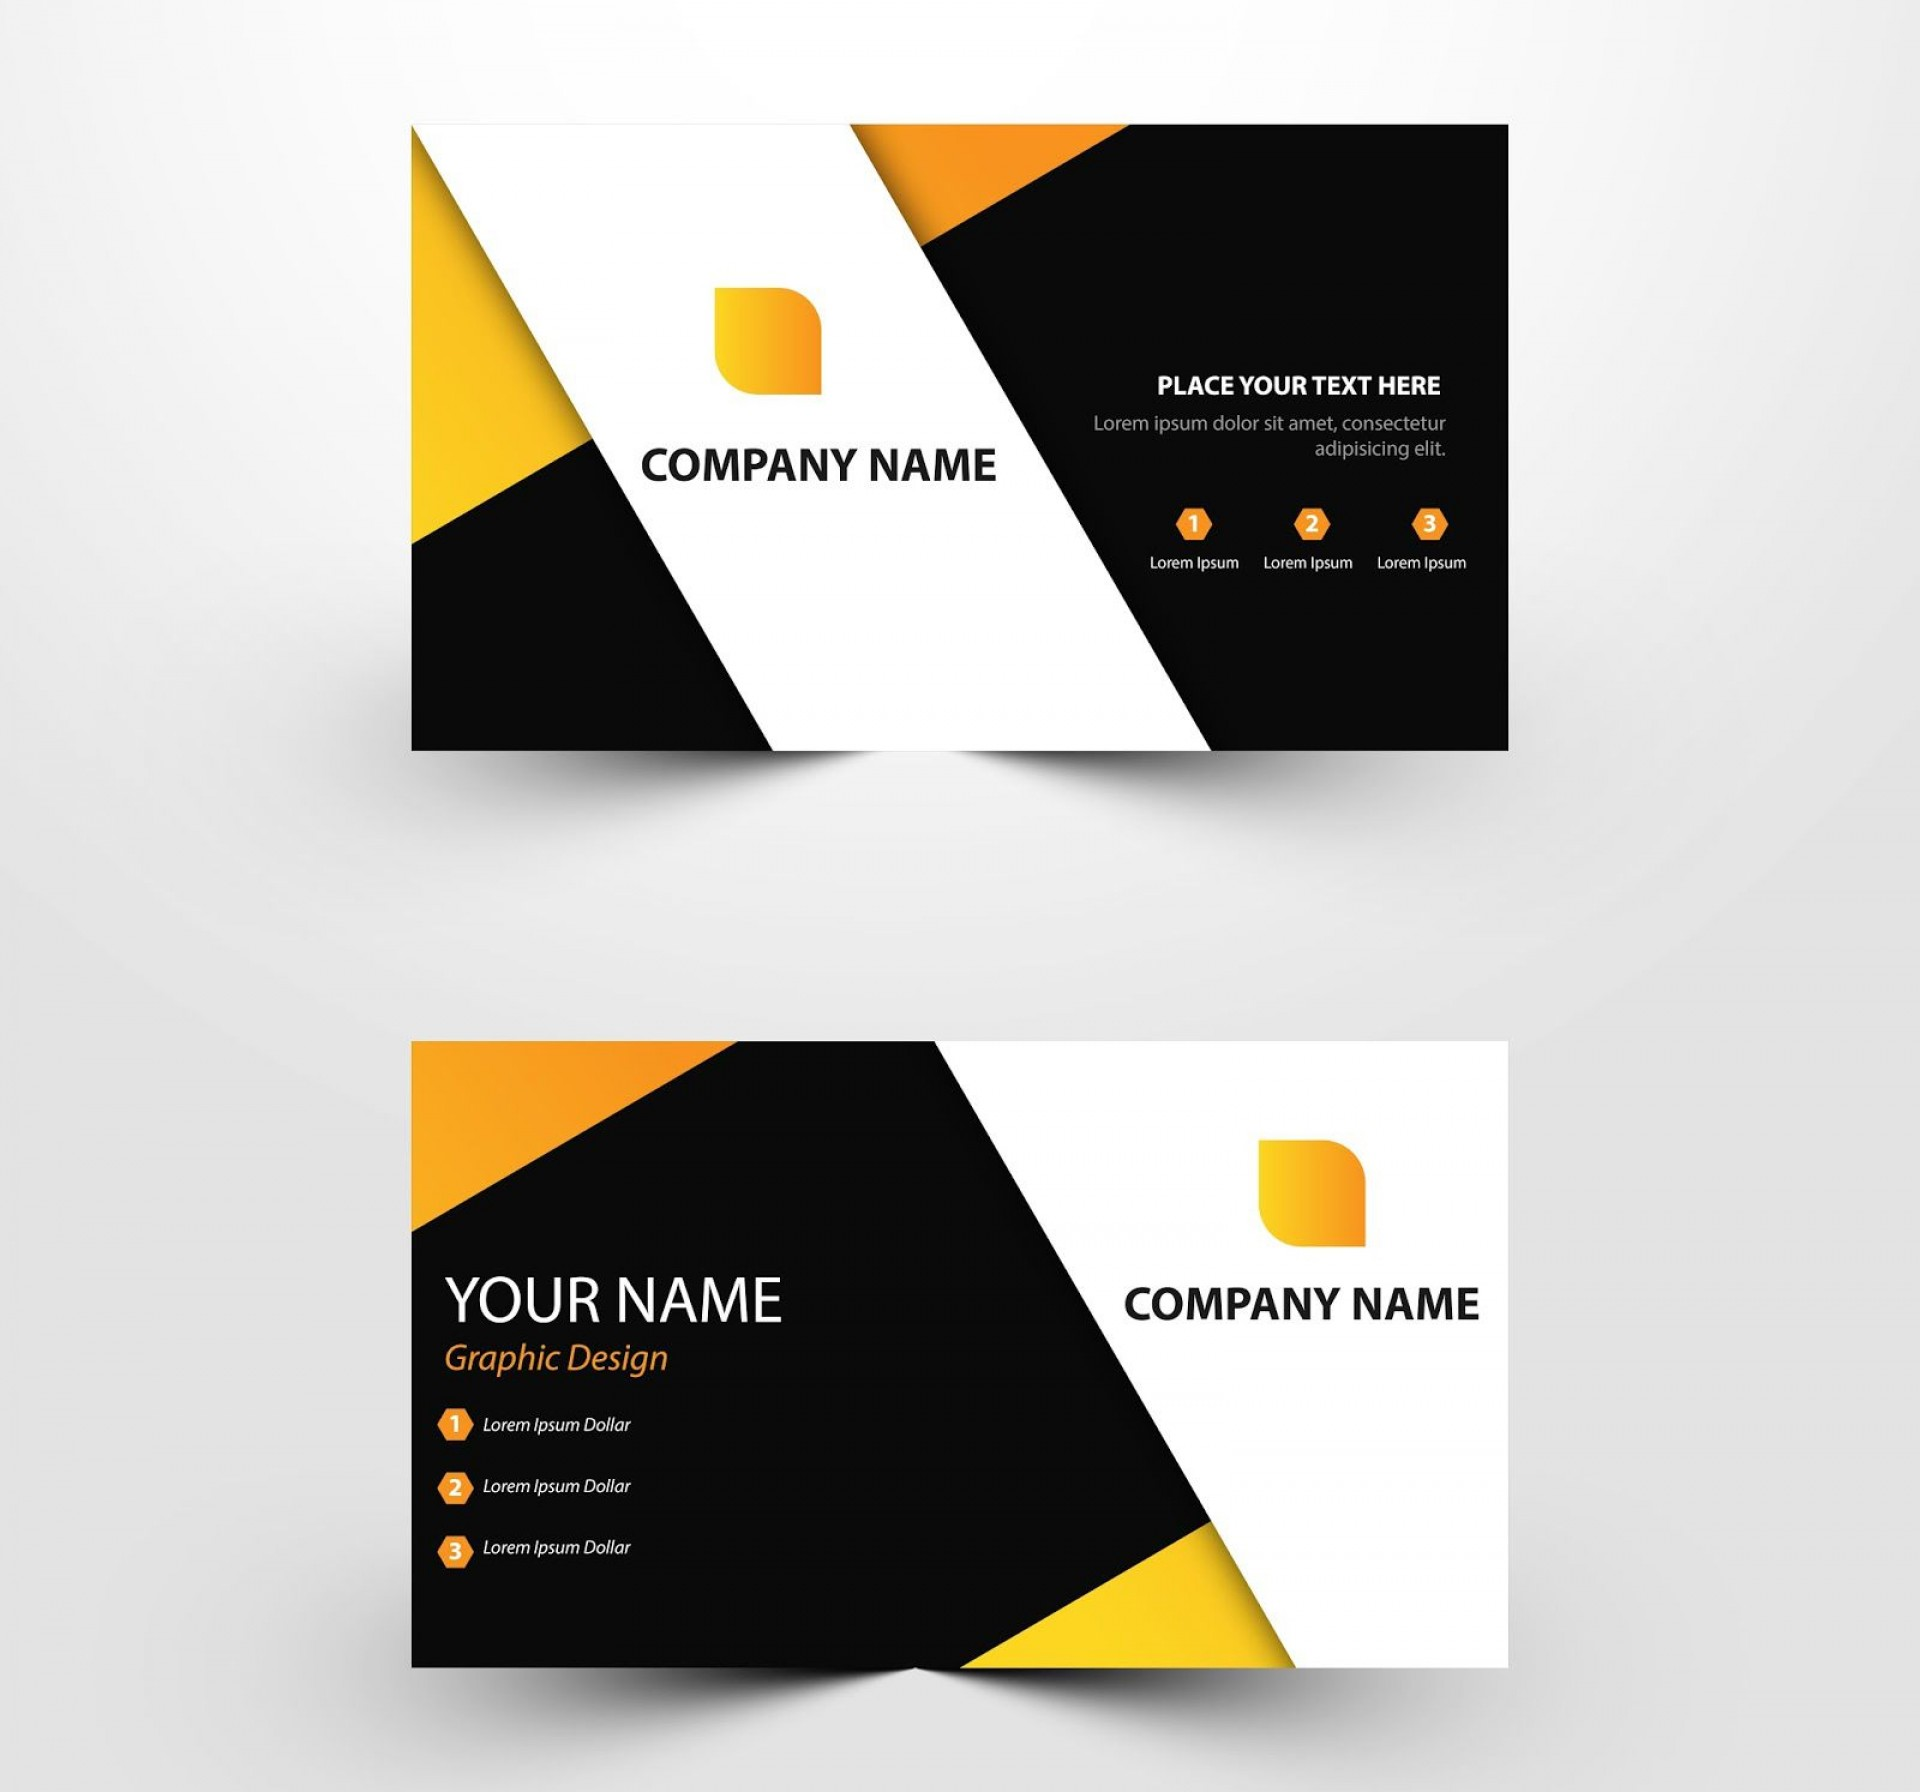 009 Awful Free Download Busines Card Template Highest Quality  Microsoft Word Photoshop Psd Double Sided1920